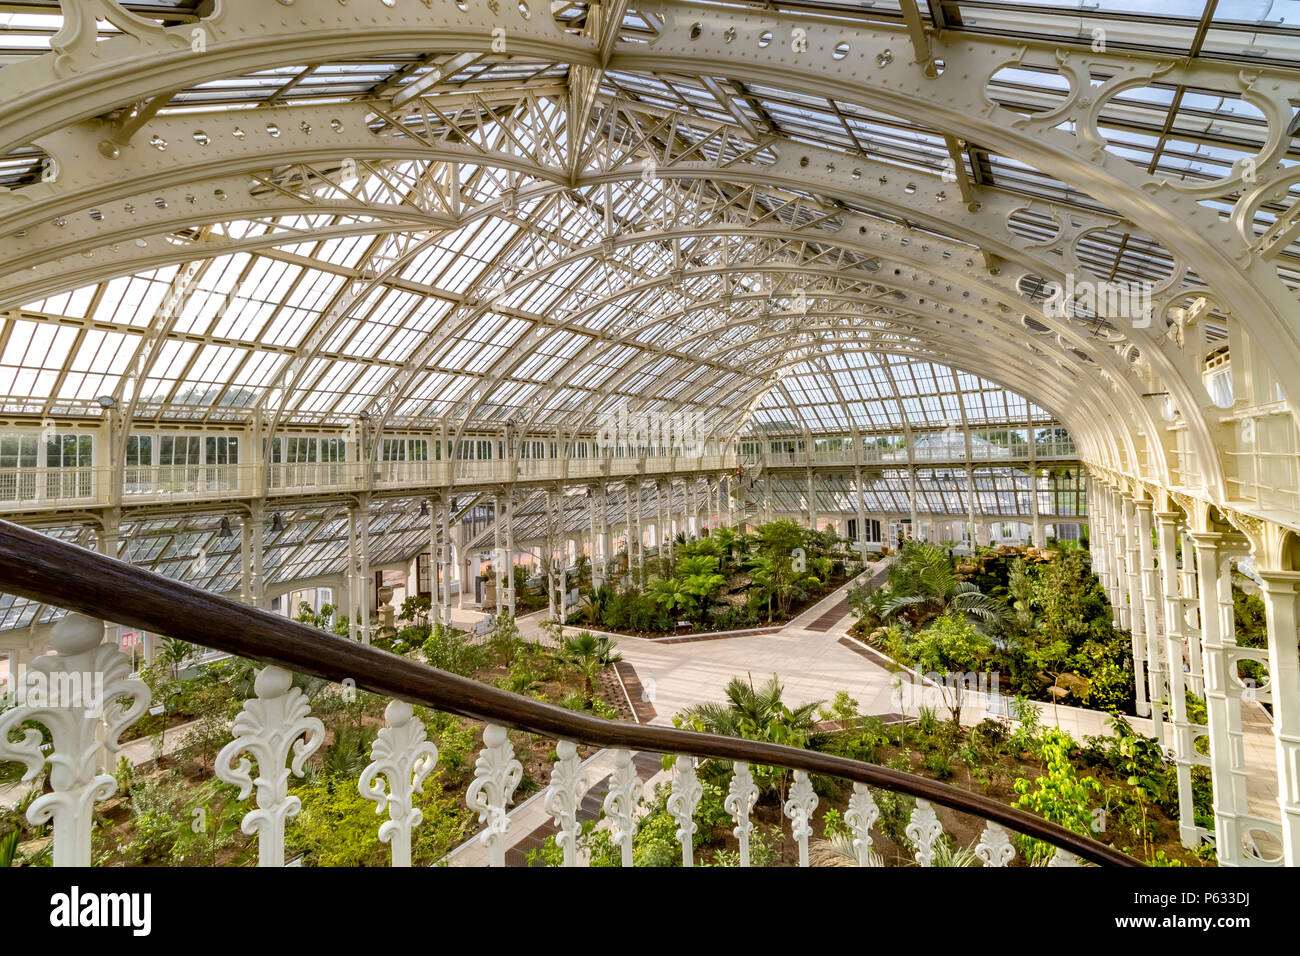 After a 5 year restoration, the newly restored Temperate House at The Royal Botanic Gardens, Kew in London has reopened to visitors . - Stock Image